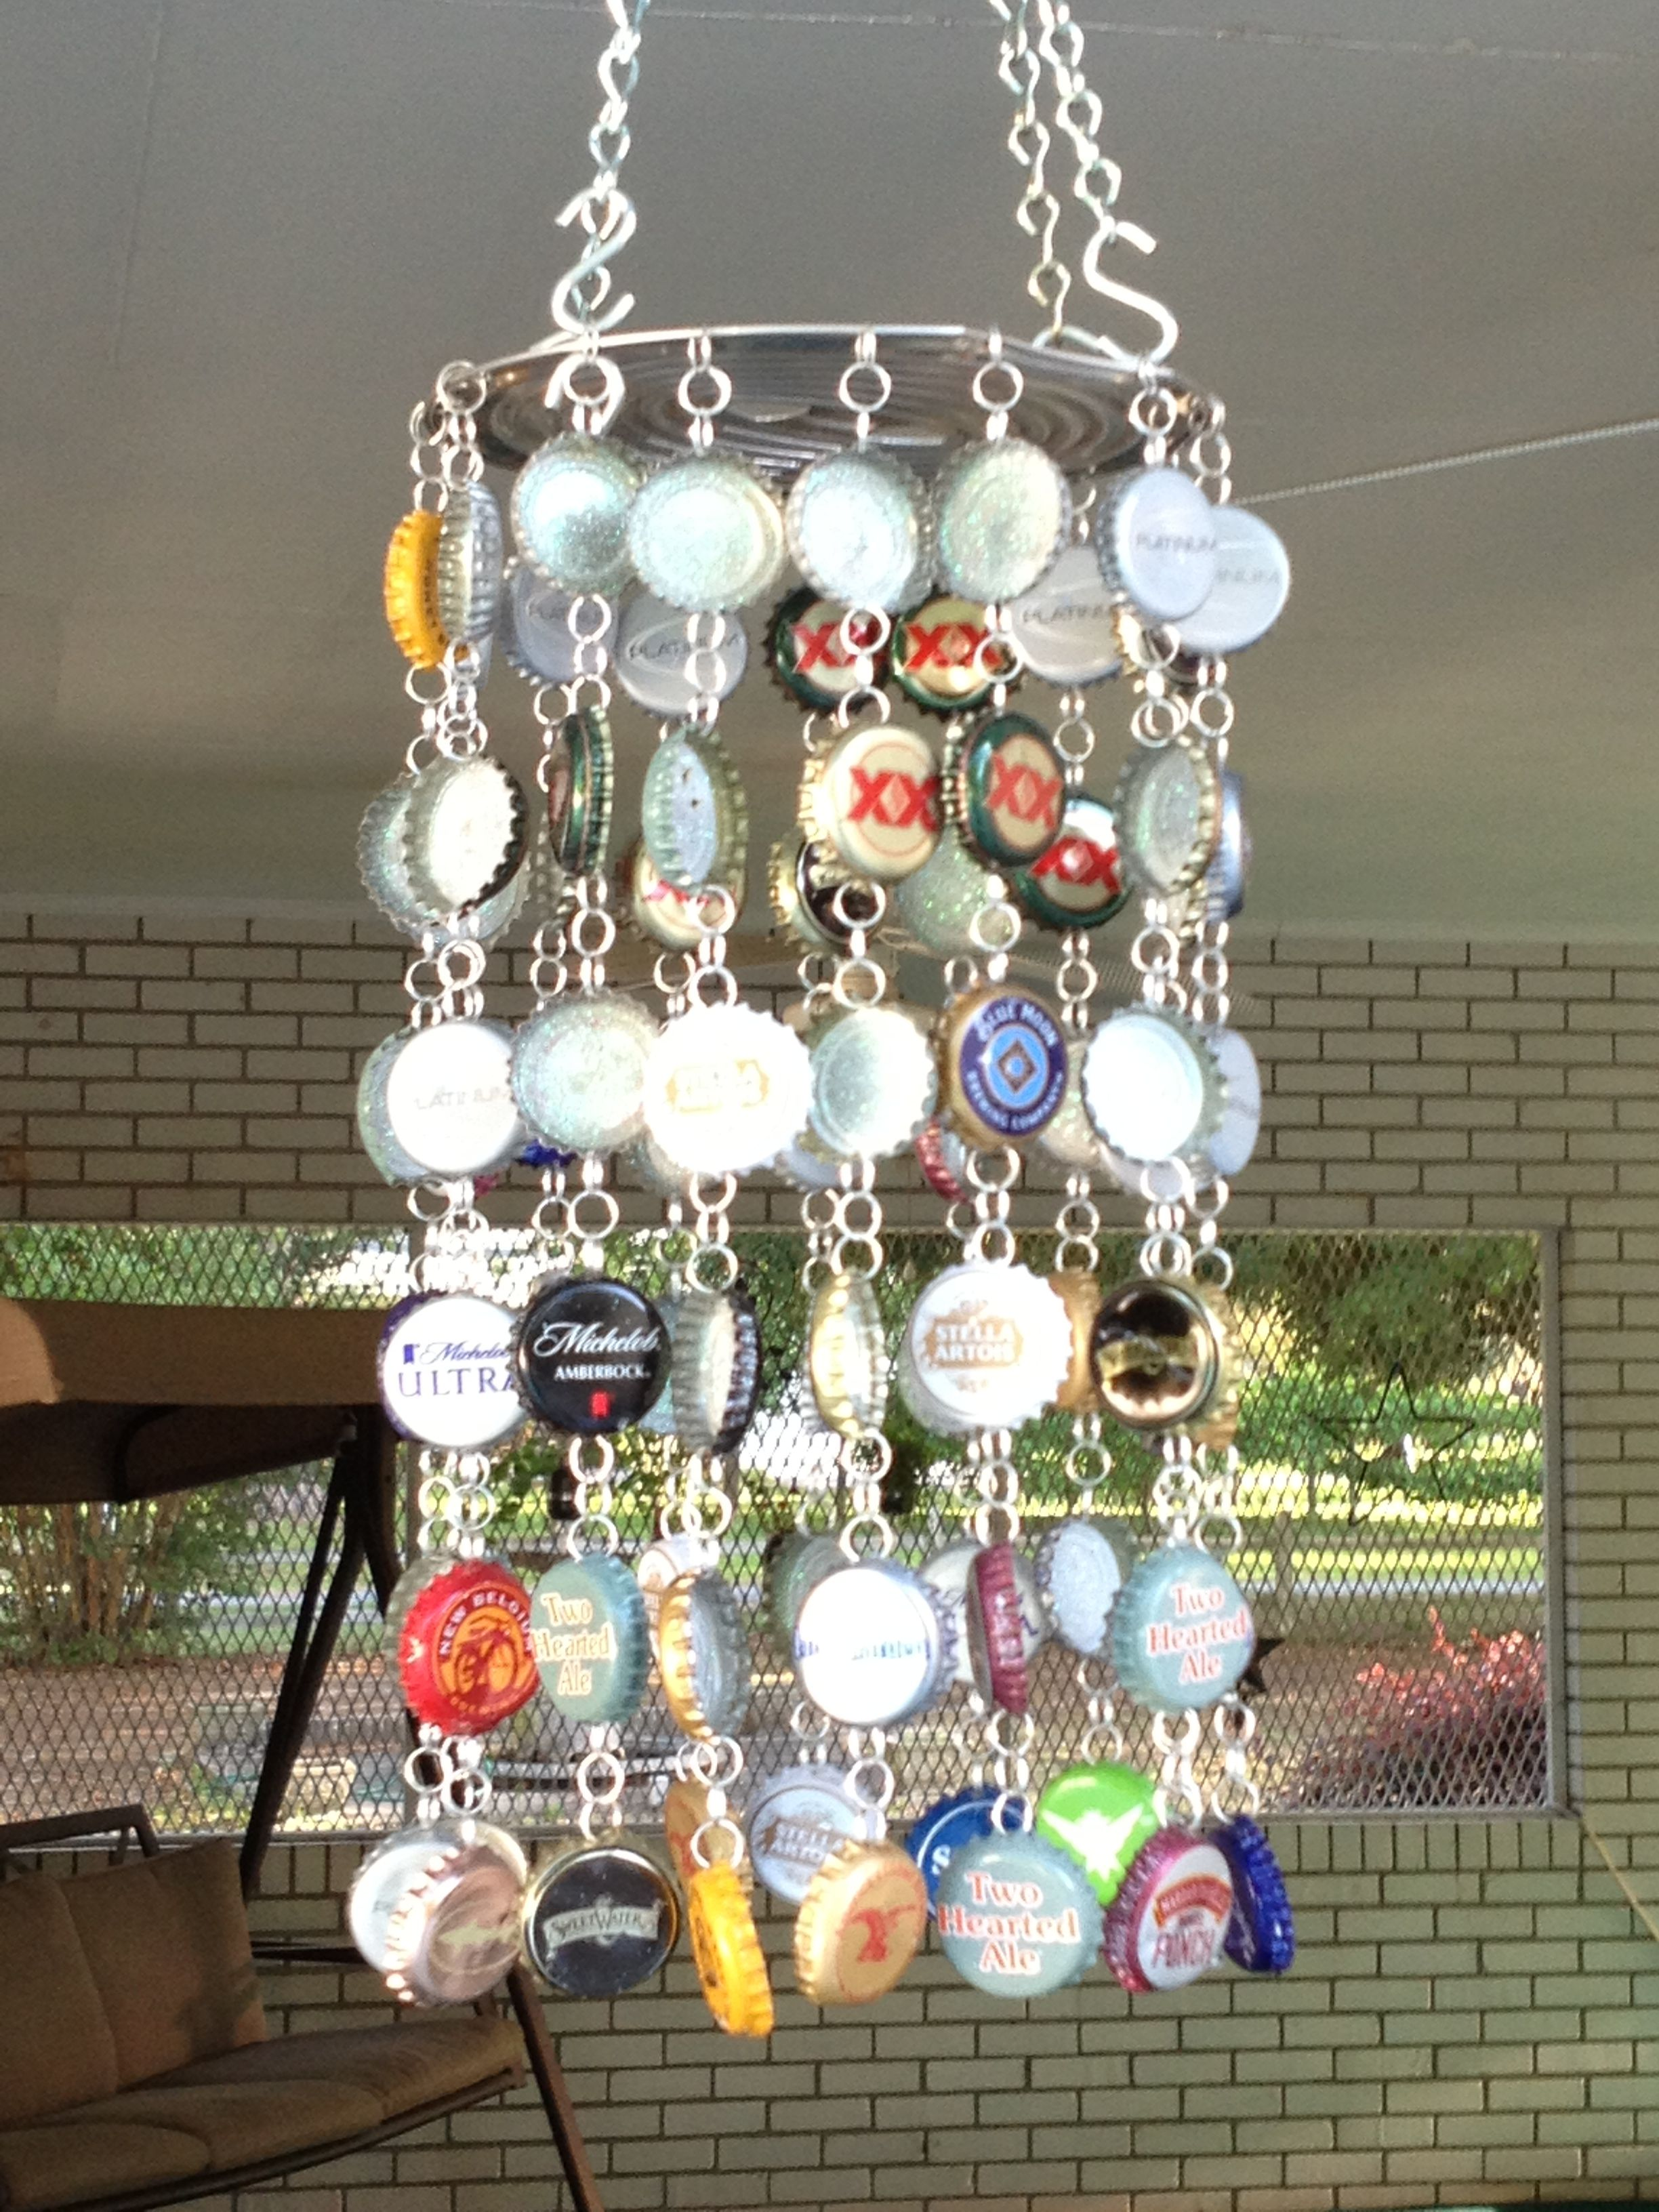 How To Make A Wind Chime Beer Spirits Bottle Cap Wind Chime I Look Forward To The Wind